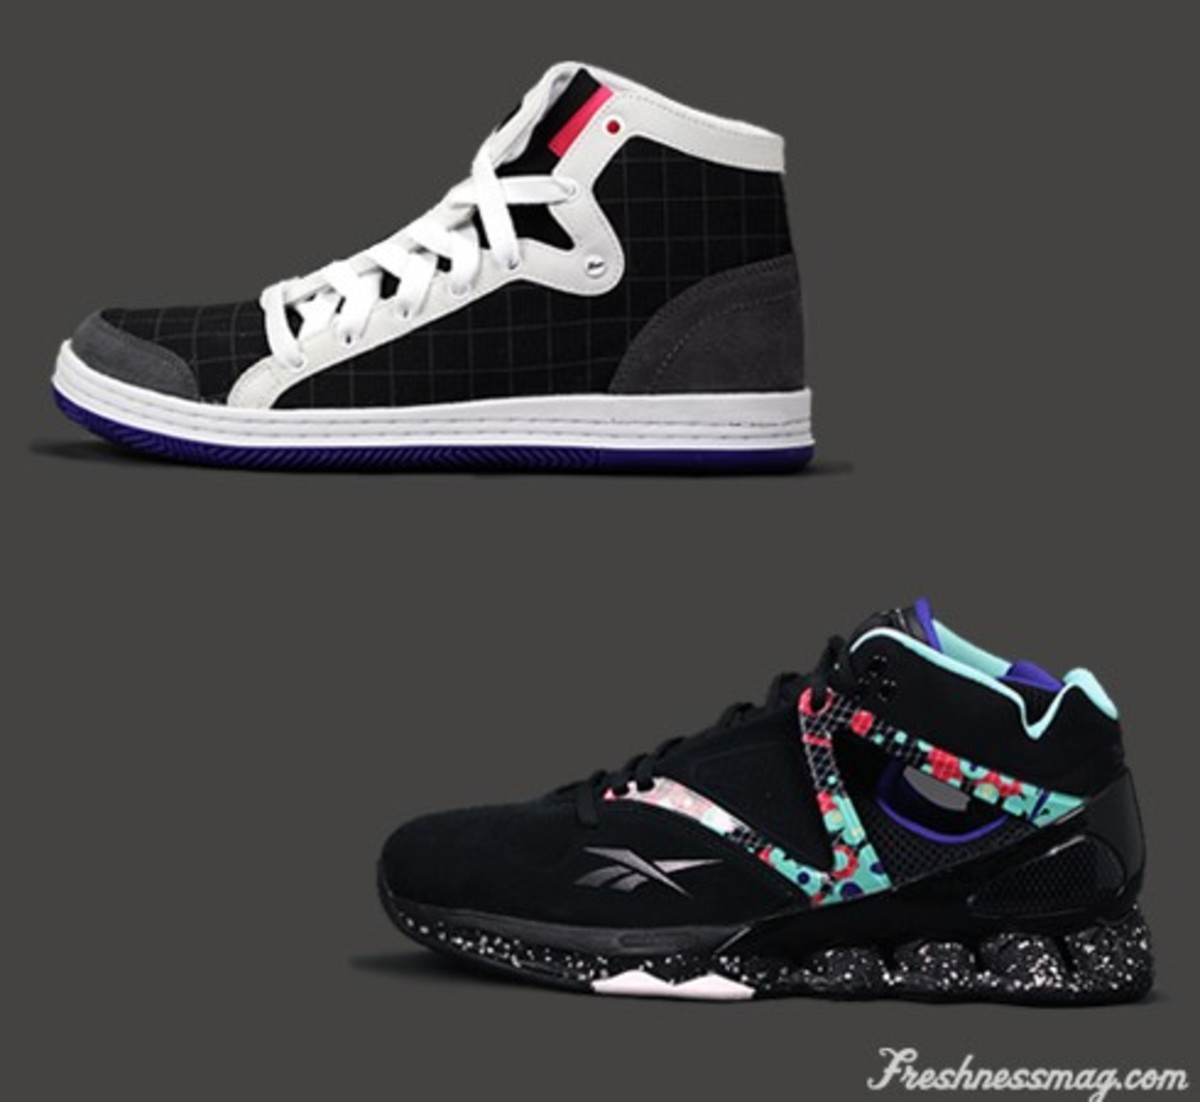 Orchard Street Footwear for Reebok - Freshness Mag dc8095a3e5